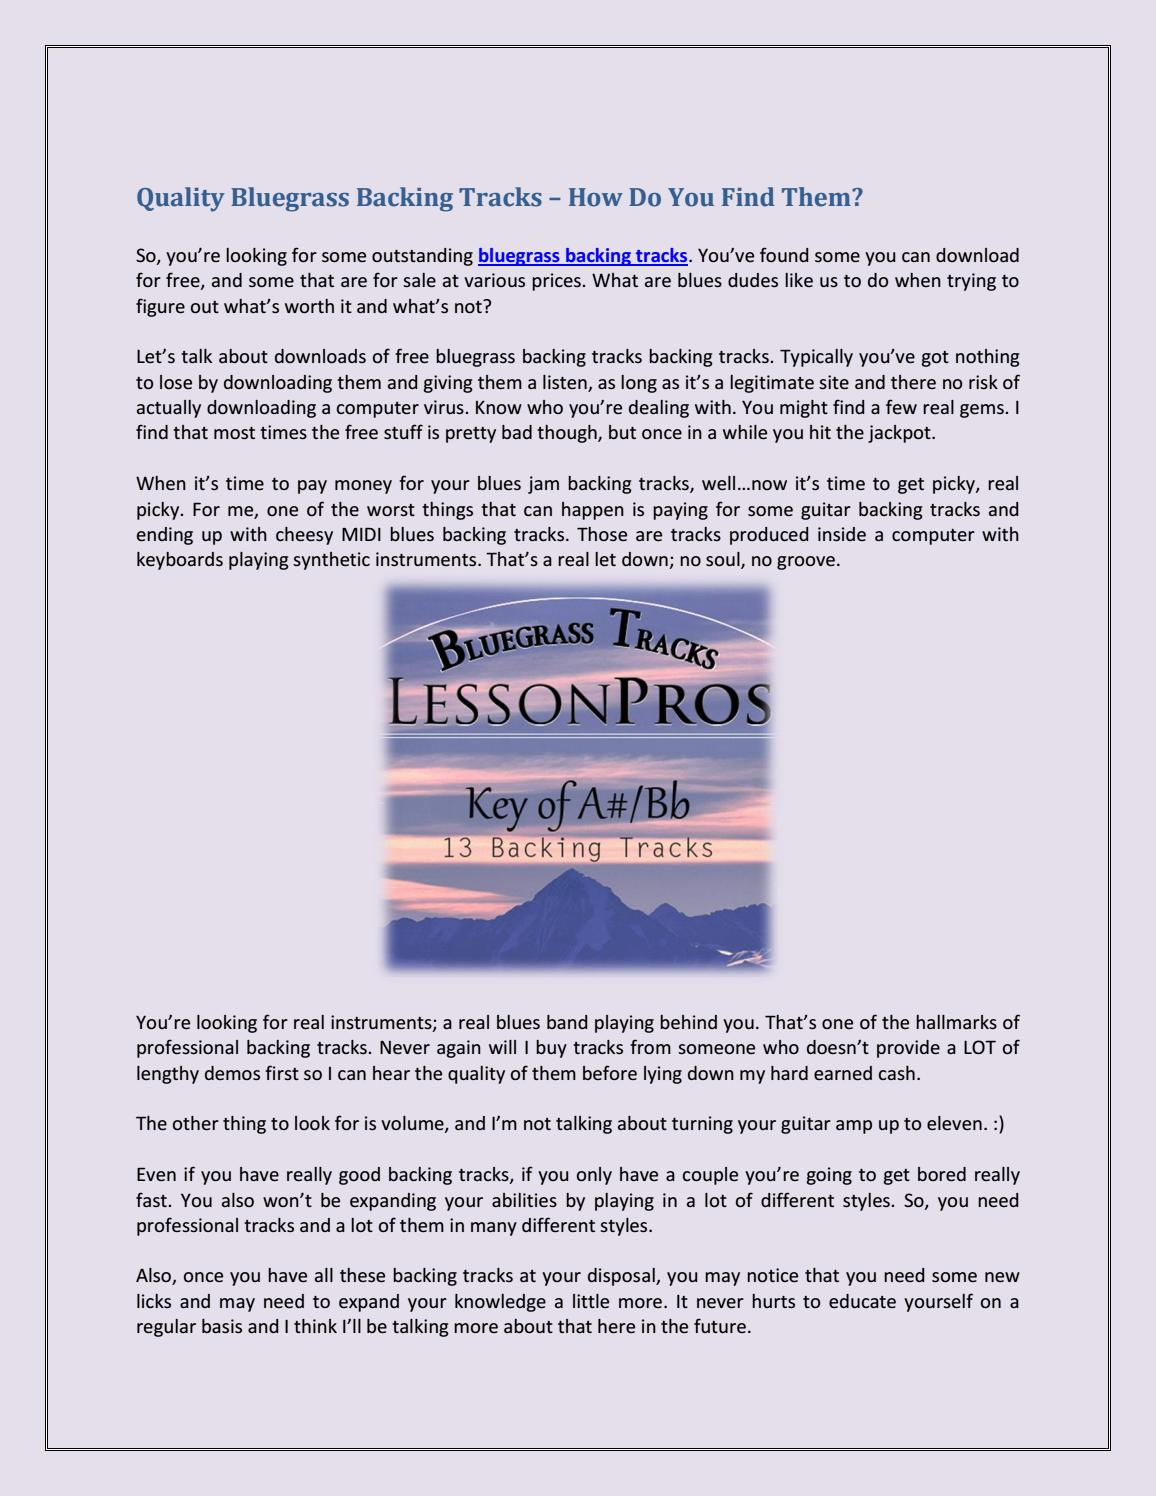 Quality Bluegrass Backing Tracks – How Do You Find Them? by